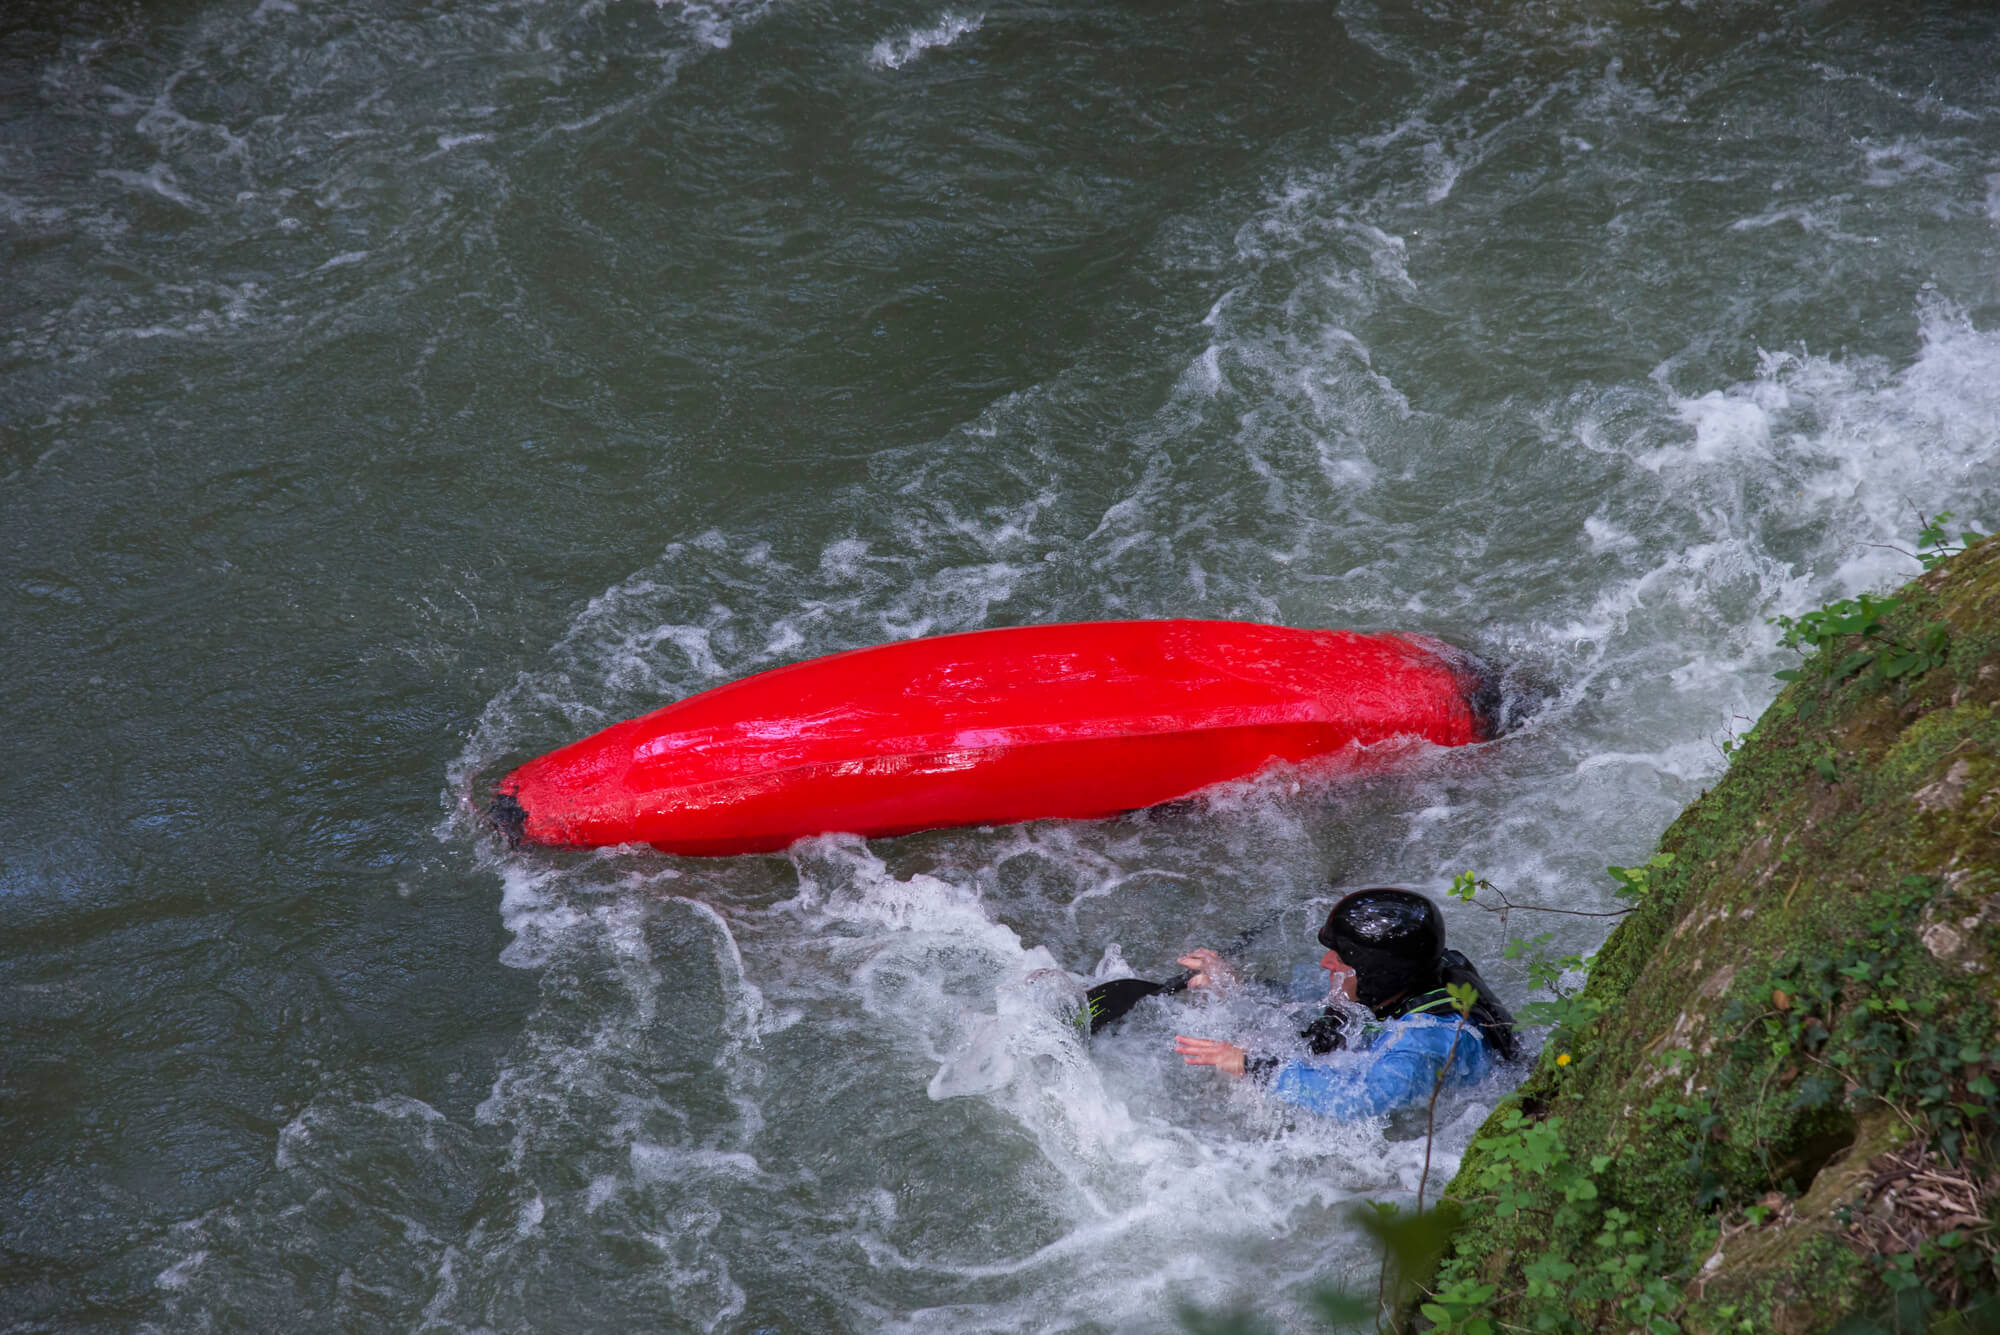 Kayak Flipped Over With Man